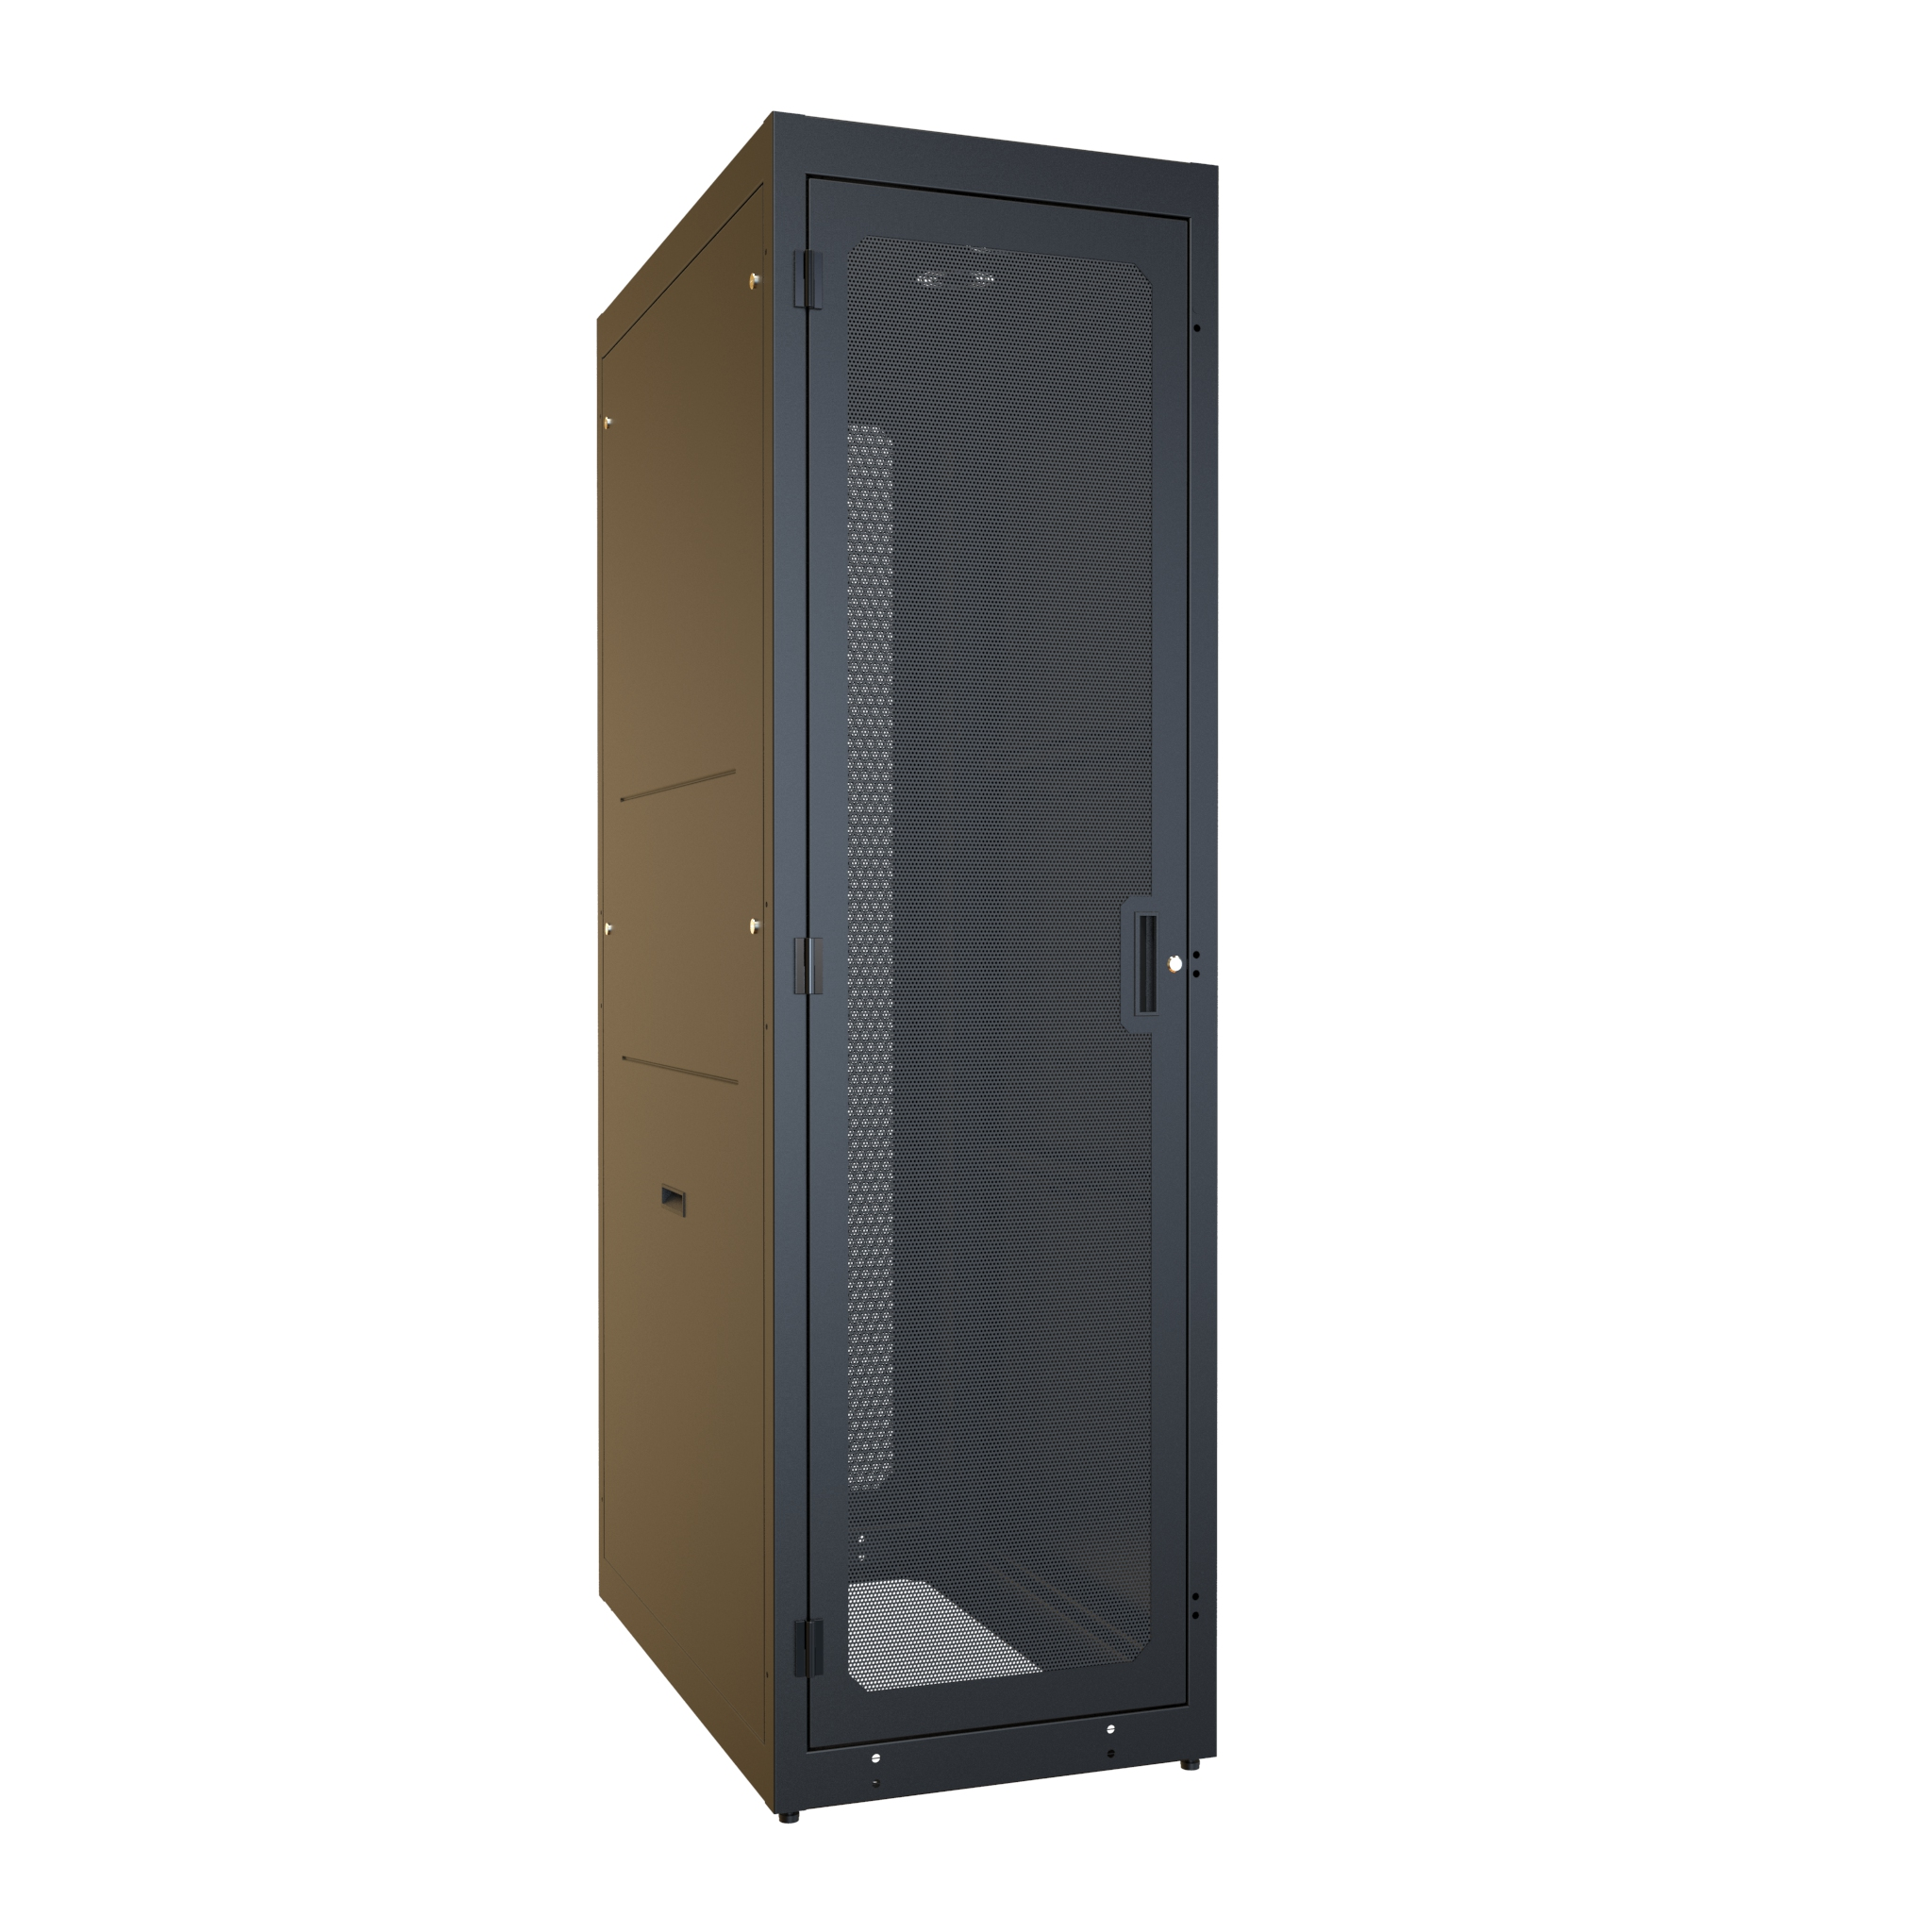 monel server cabinet zoom type communication pro rack nsr nps p proof dust products he cabinets